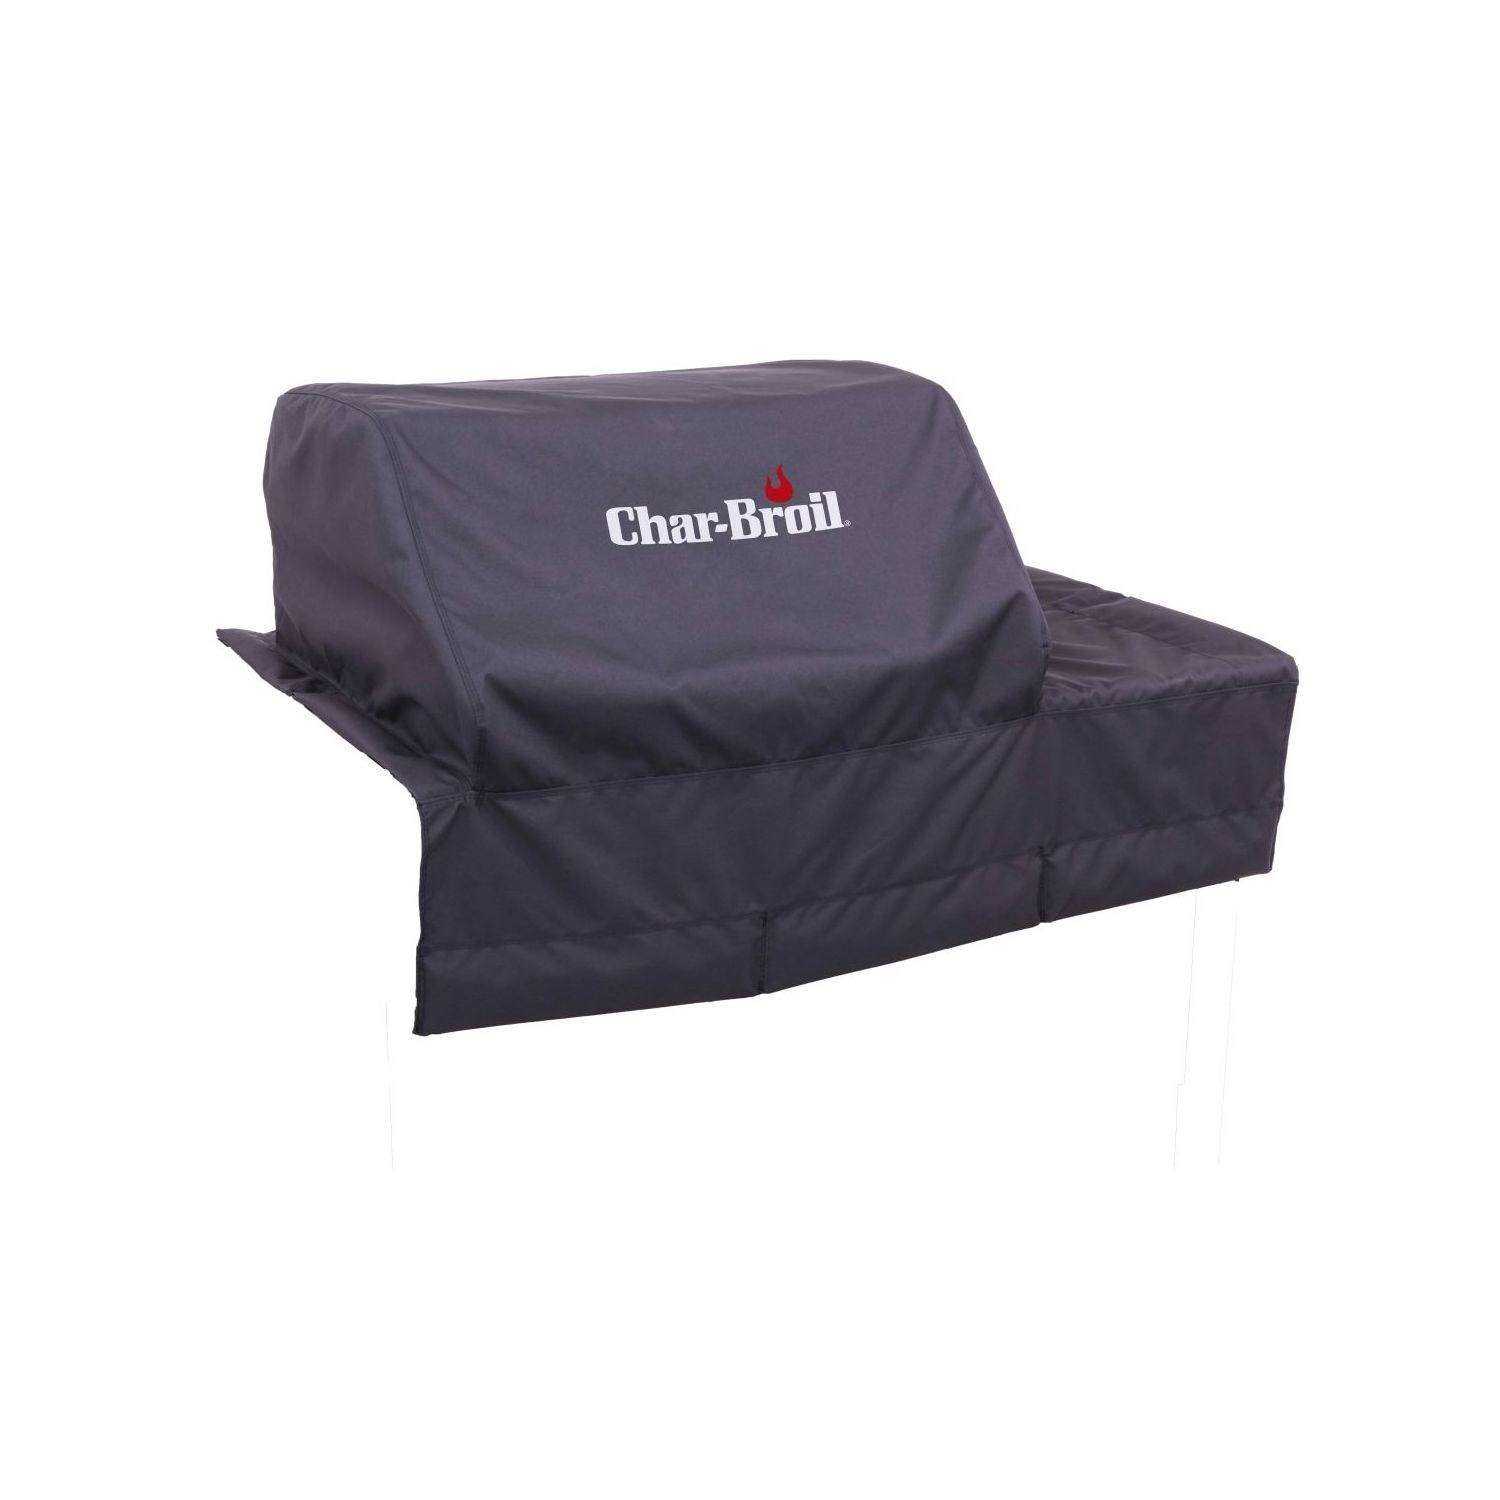 Char-Broil Cover For The Ultimate 3200 3 Burner Outdoor BBQ Kitchen